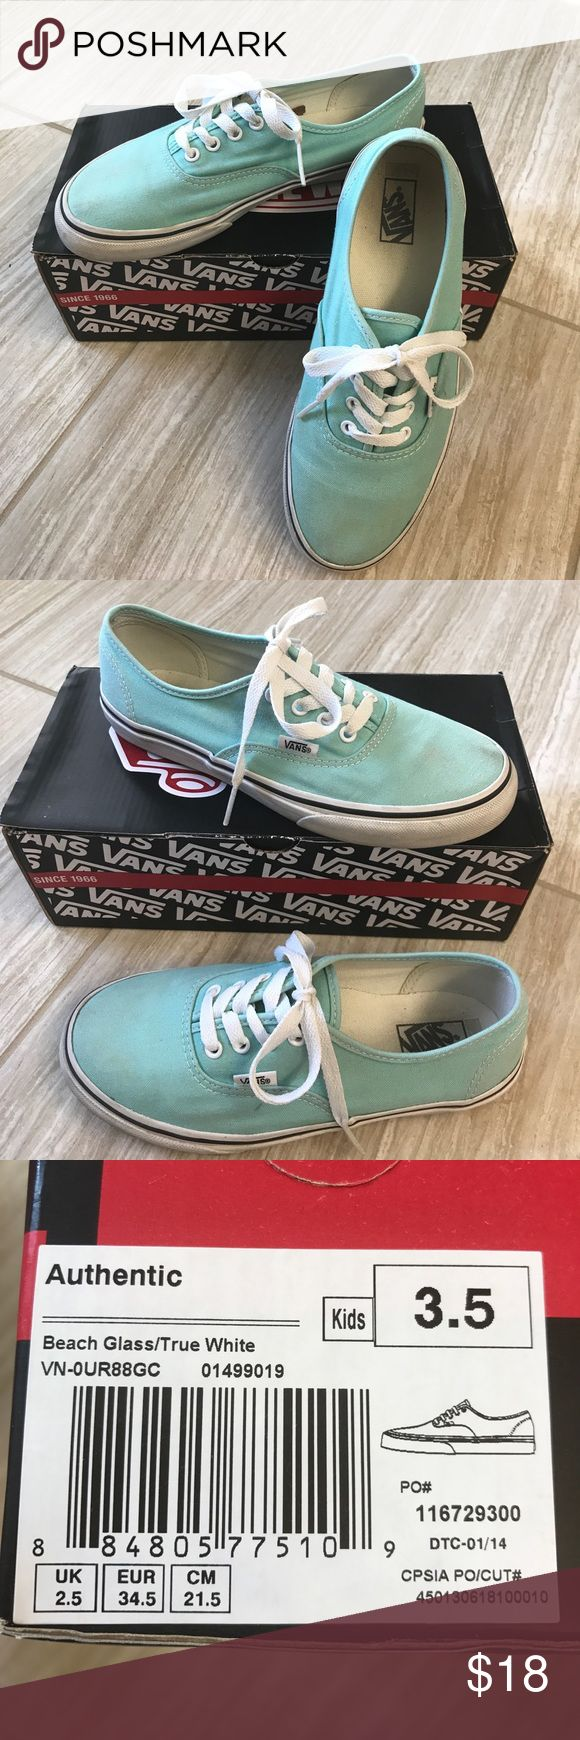 Beach Glass Mint Vans Lots of wear left.... just a few scuffs otherwise in great shape! Vans Shoes Sneakers